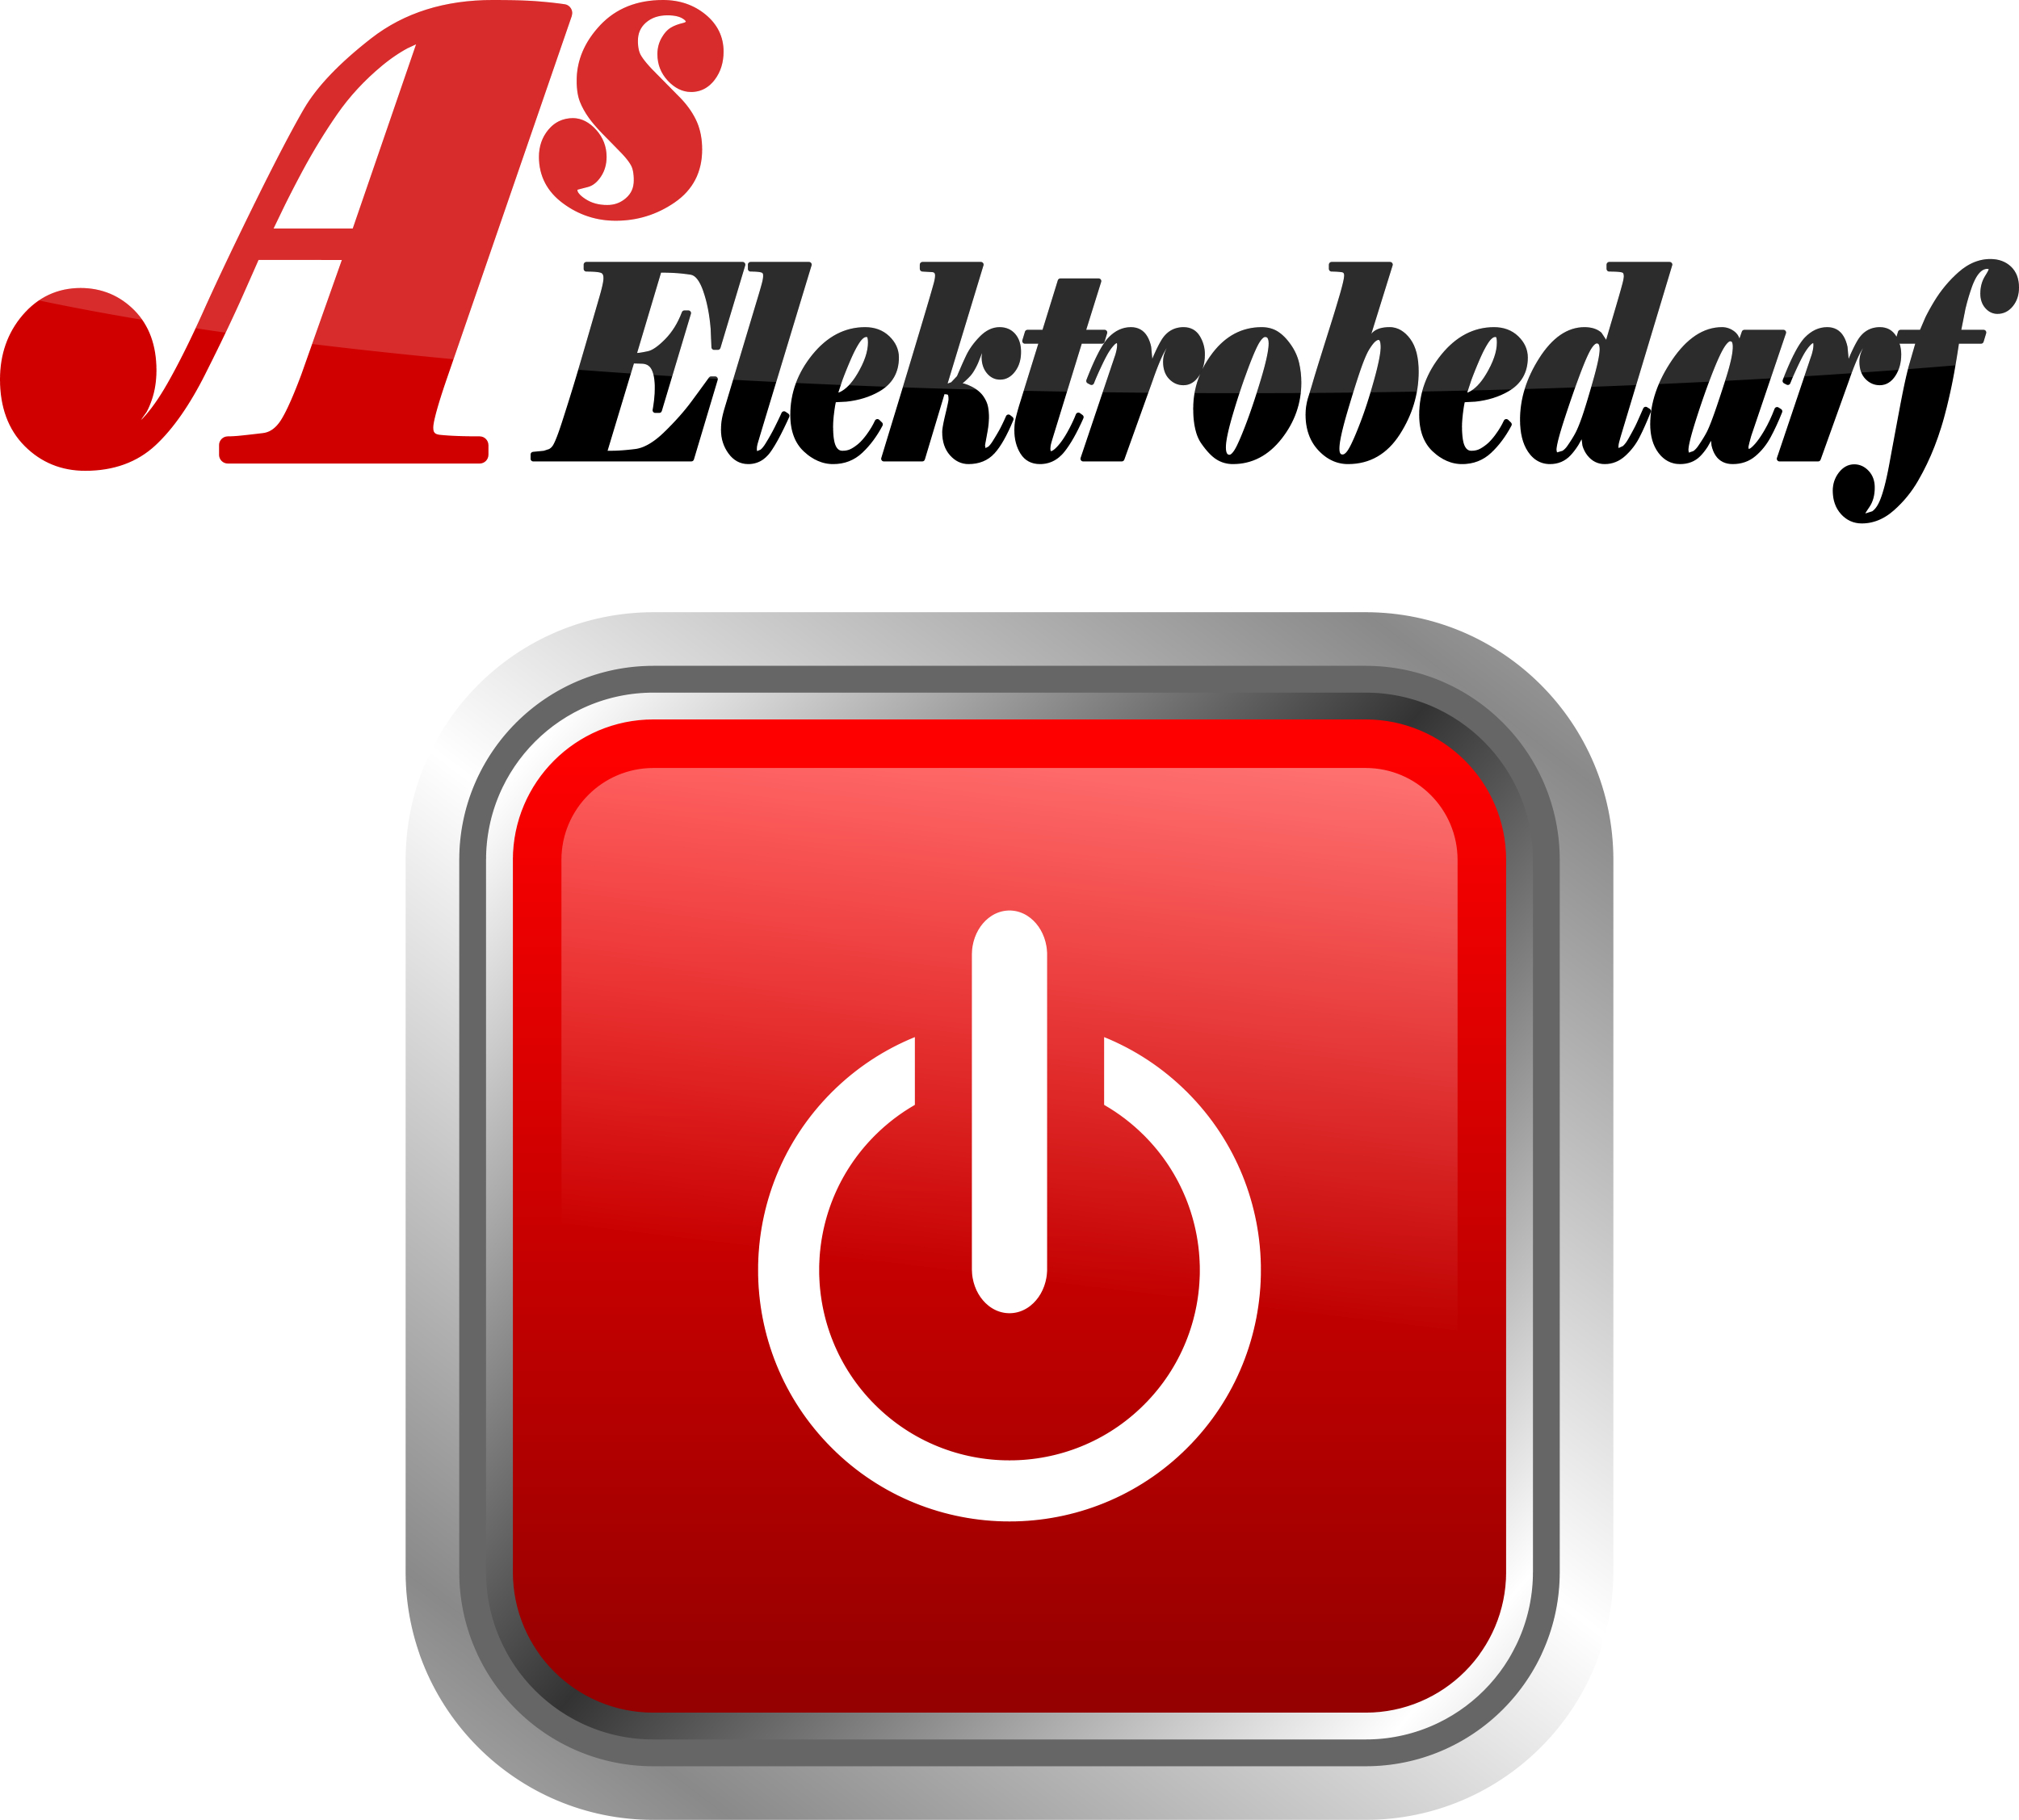 As Elektrobedarf e.K.